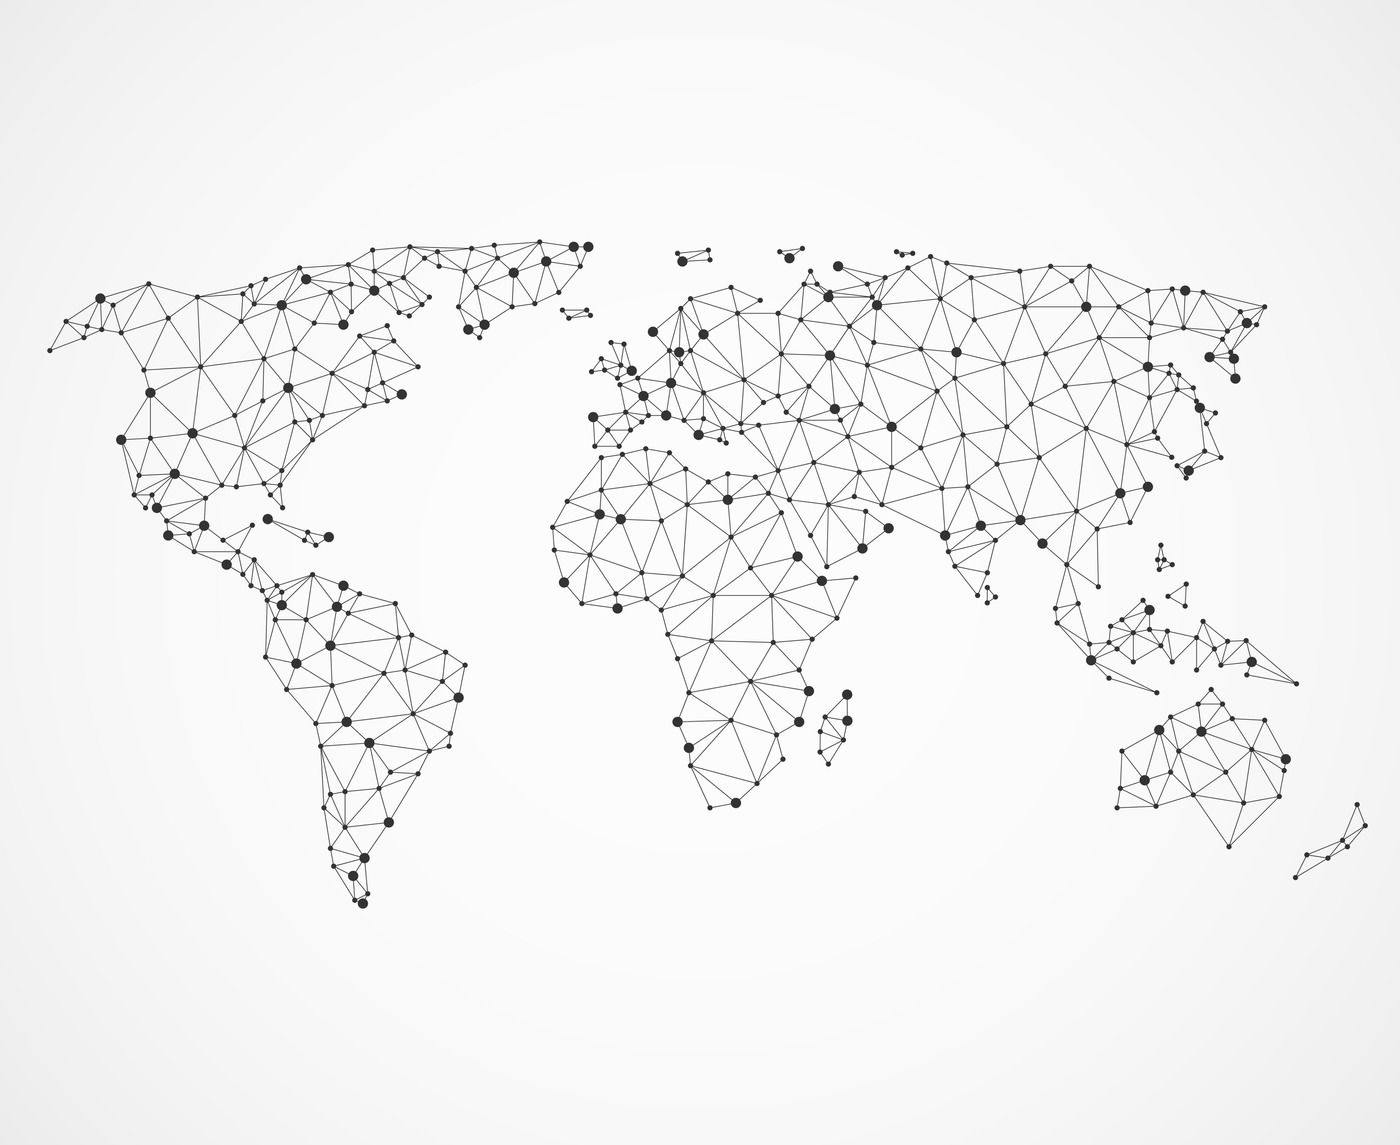 Networking World Map Texture Low Poly Earth Vector Global